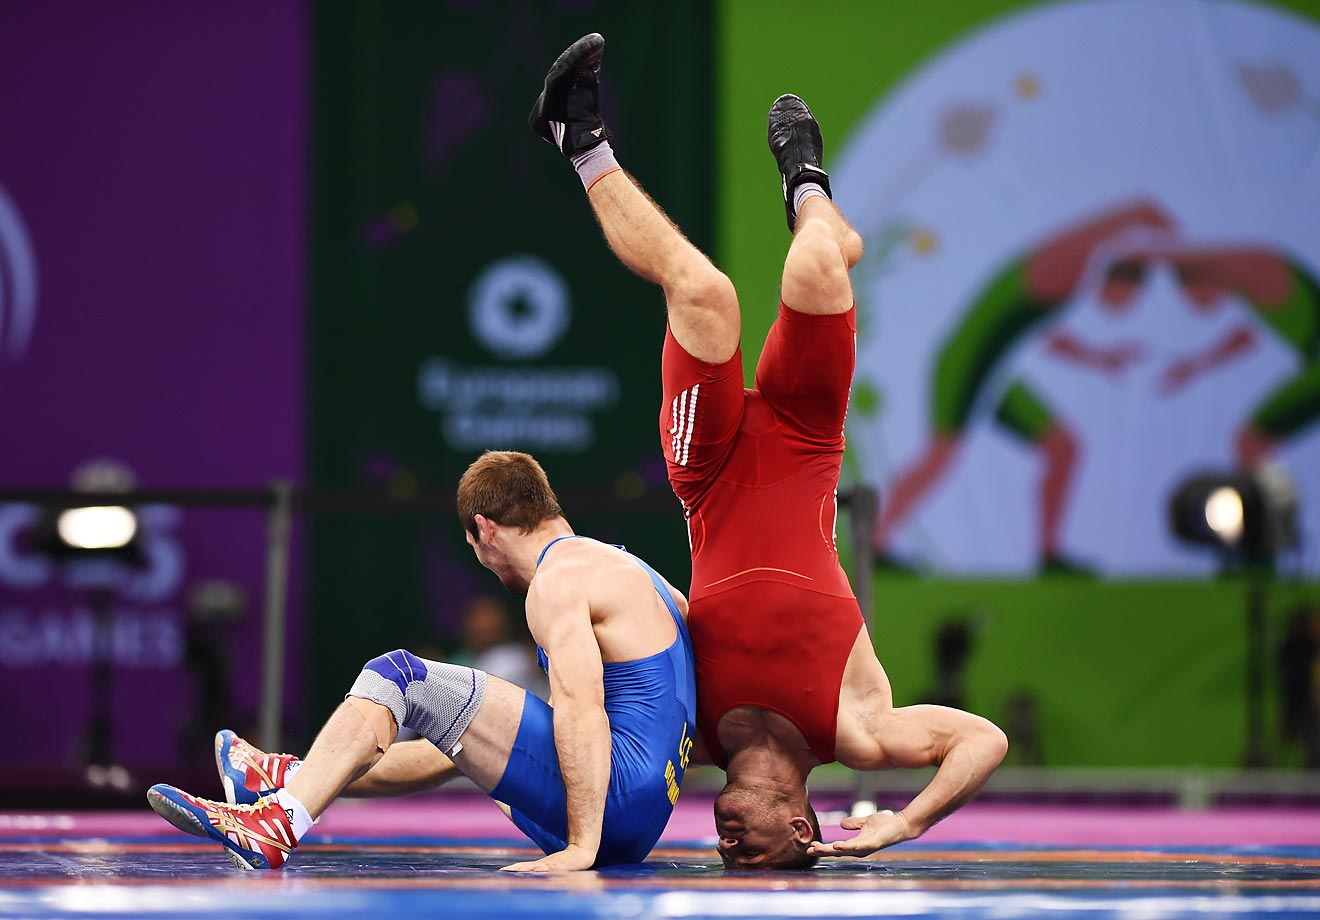 Istvan Levai (red) of Slovakia and Denys Dem'Yankov (blue) of Ukraine compete in the 66kg Greco Roman bronze final at the Baku 2015 European Games.